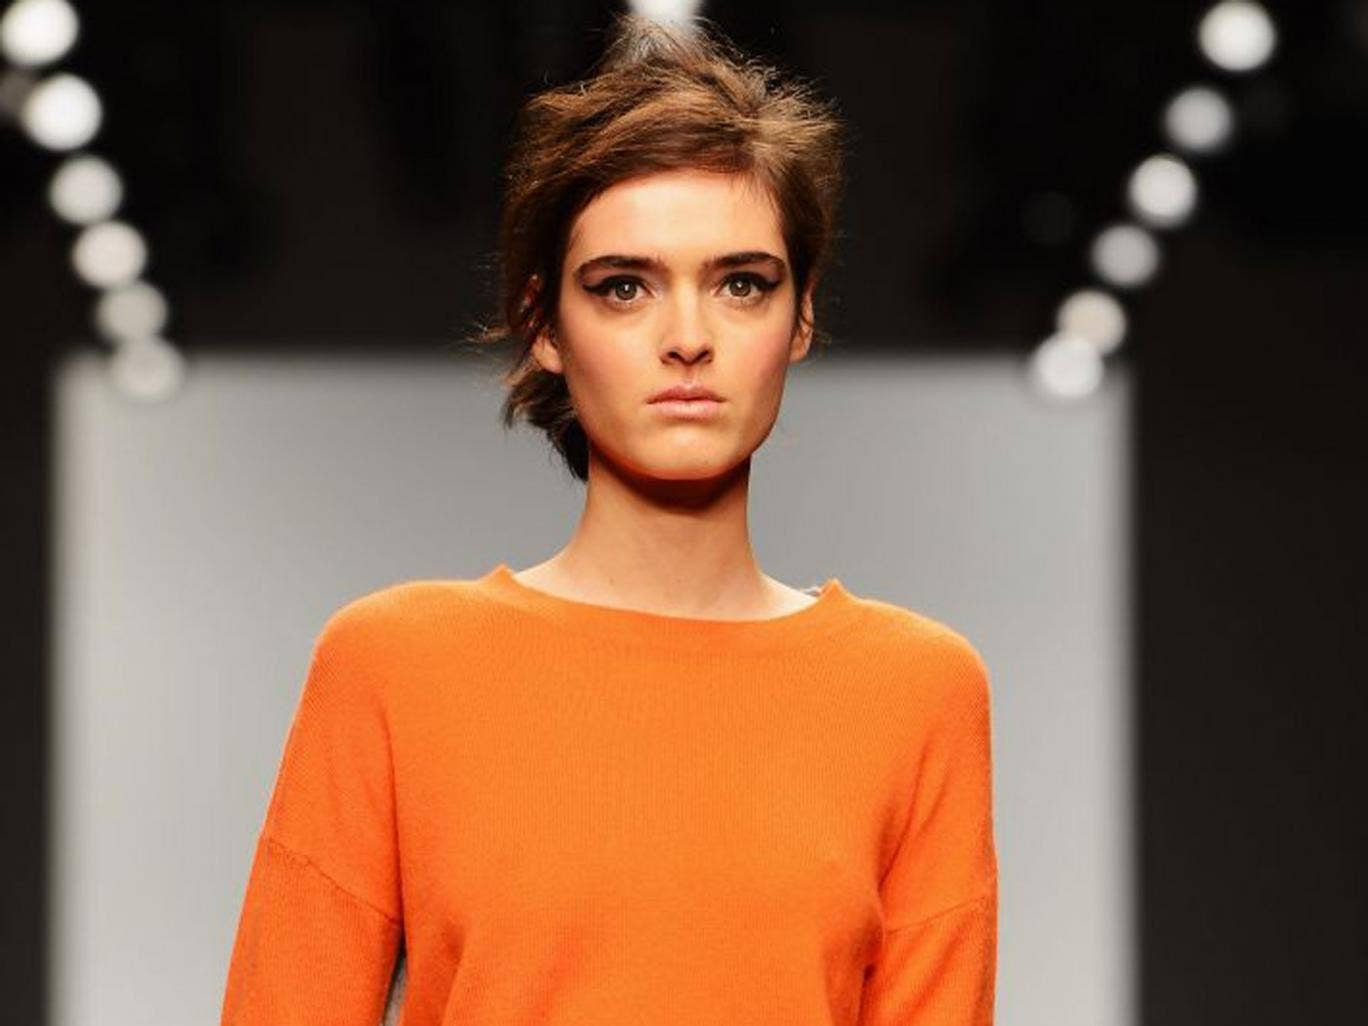 A model at  Zoe Jordan's show, which was the first at this year's London Fashion Week